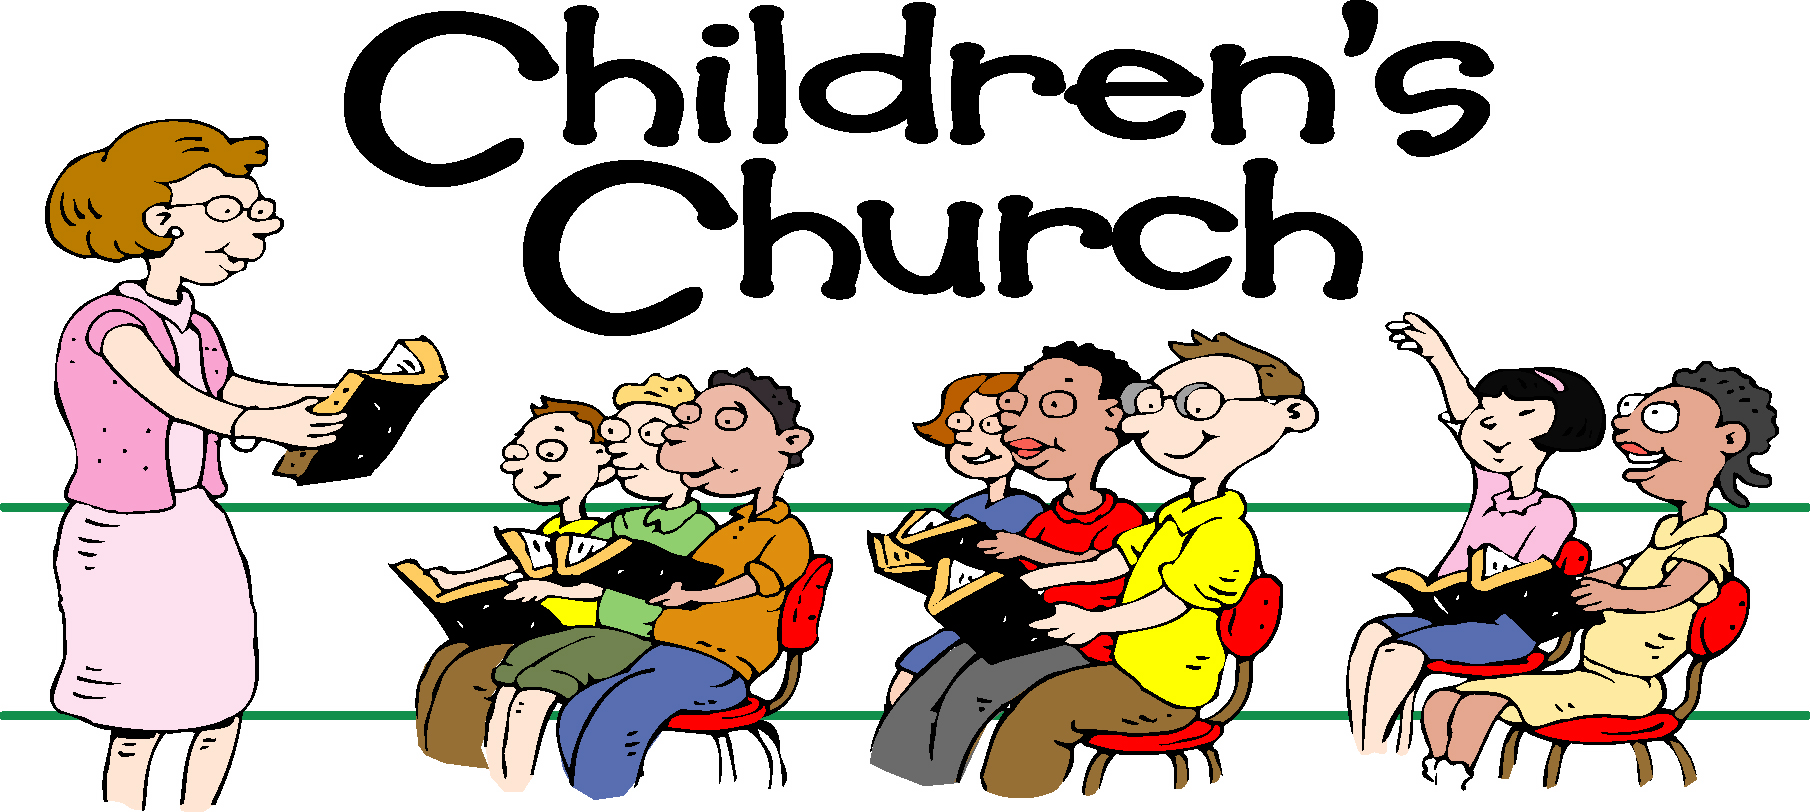 Adults sitting in church clipart picture freeuse Free Church Activities Cliparts, Download Free Clip Art, Free Clip ... picture freeuse